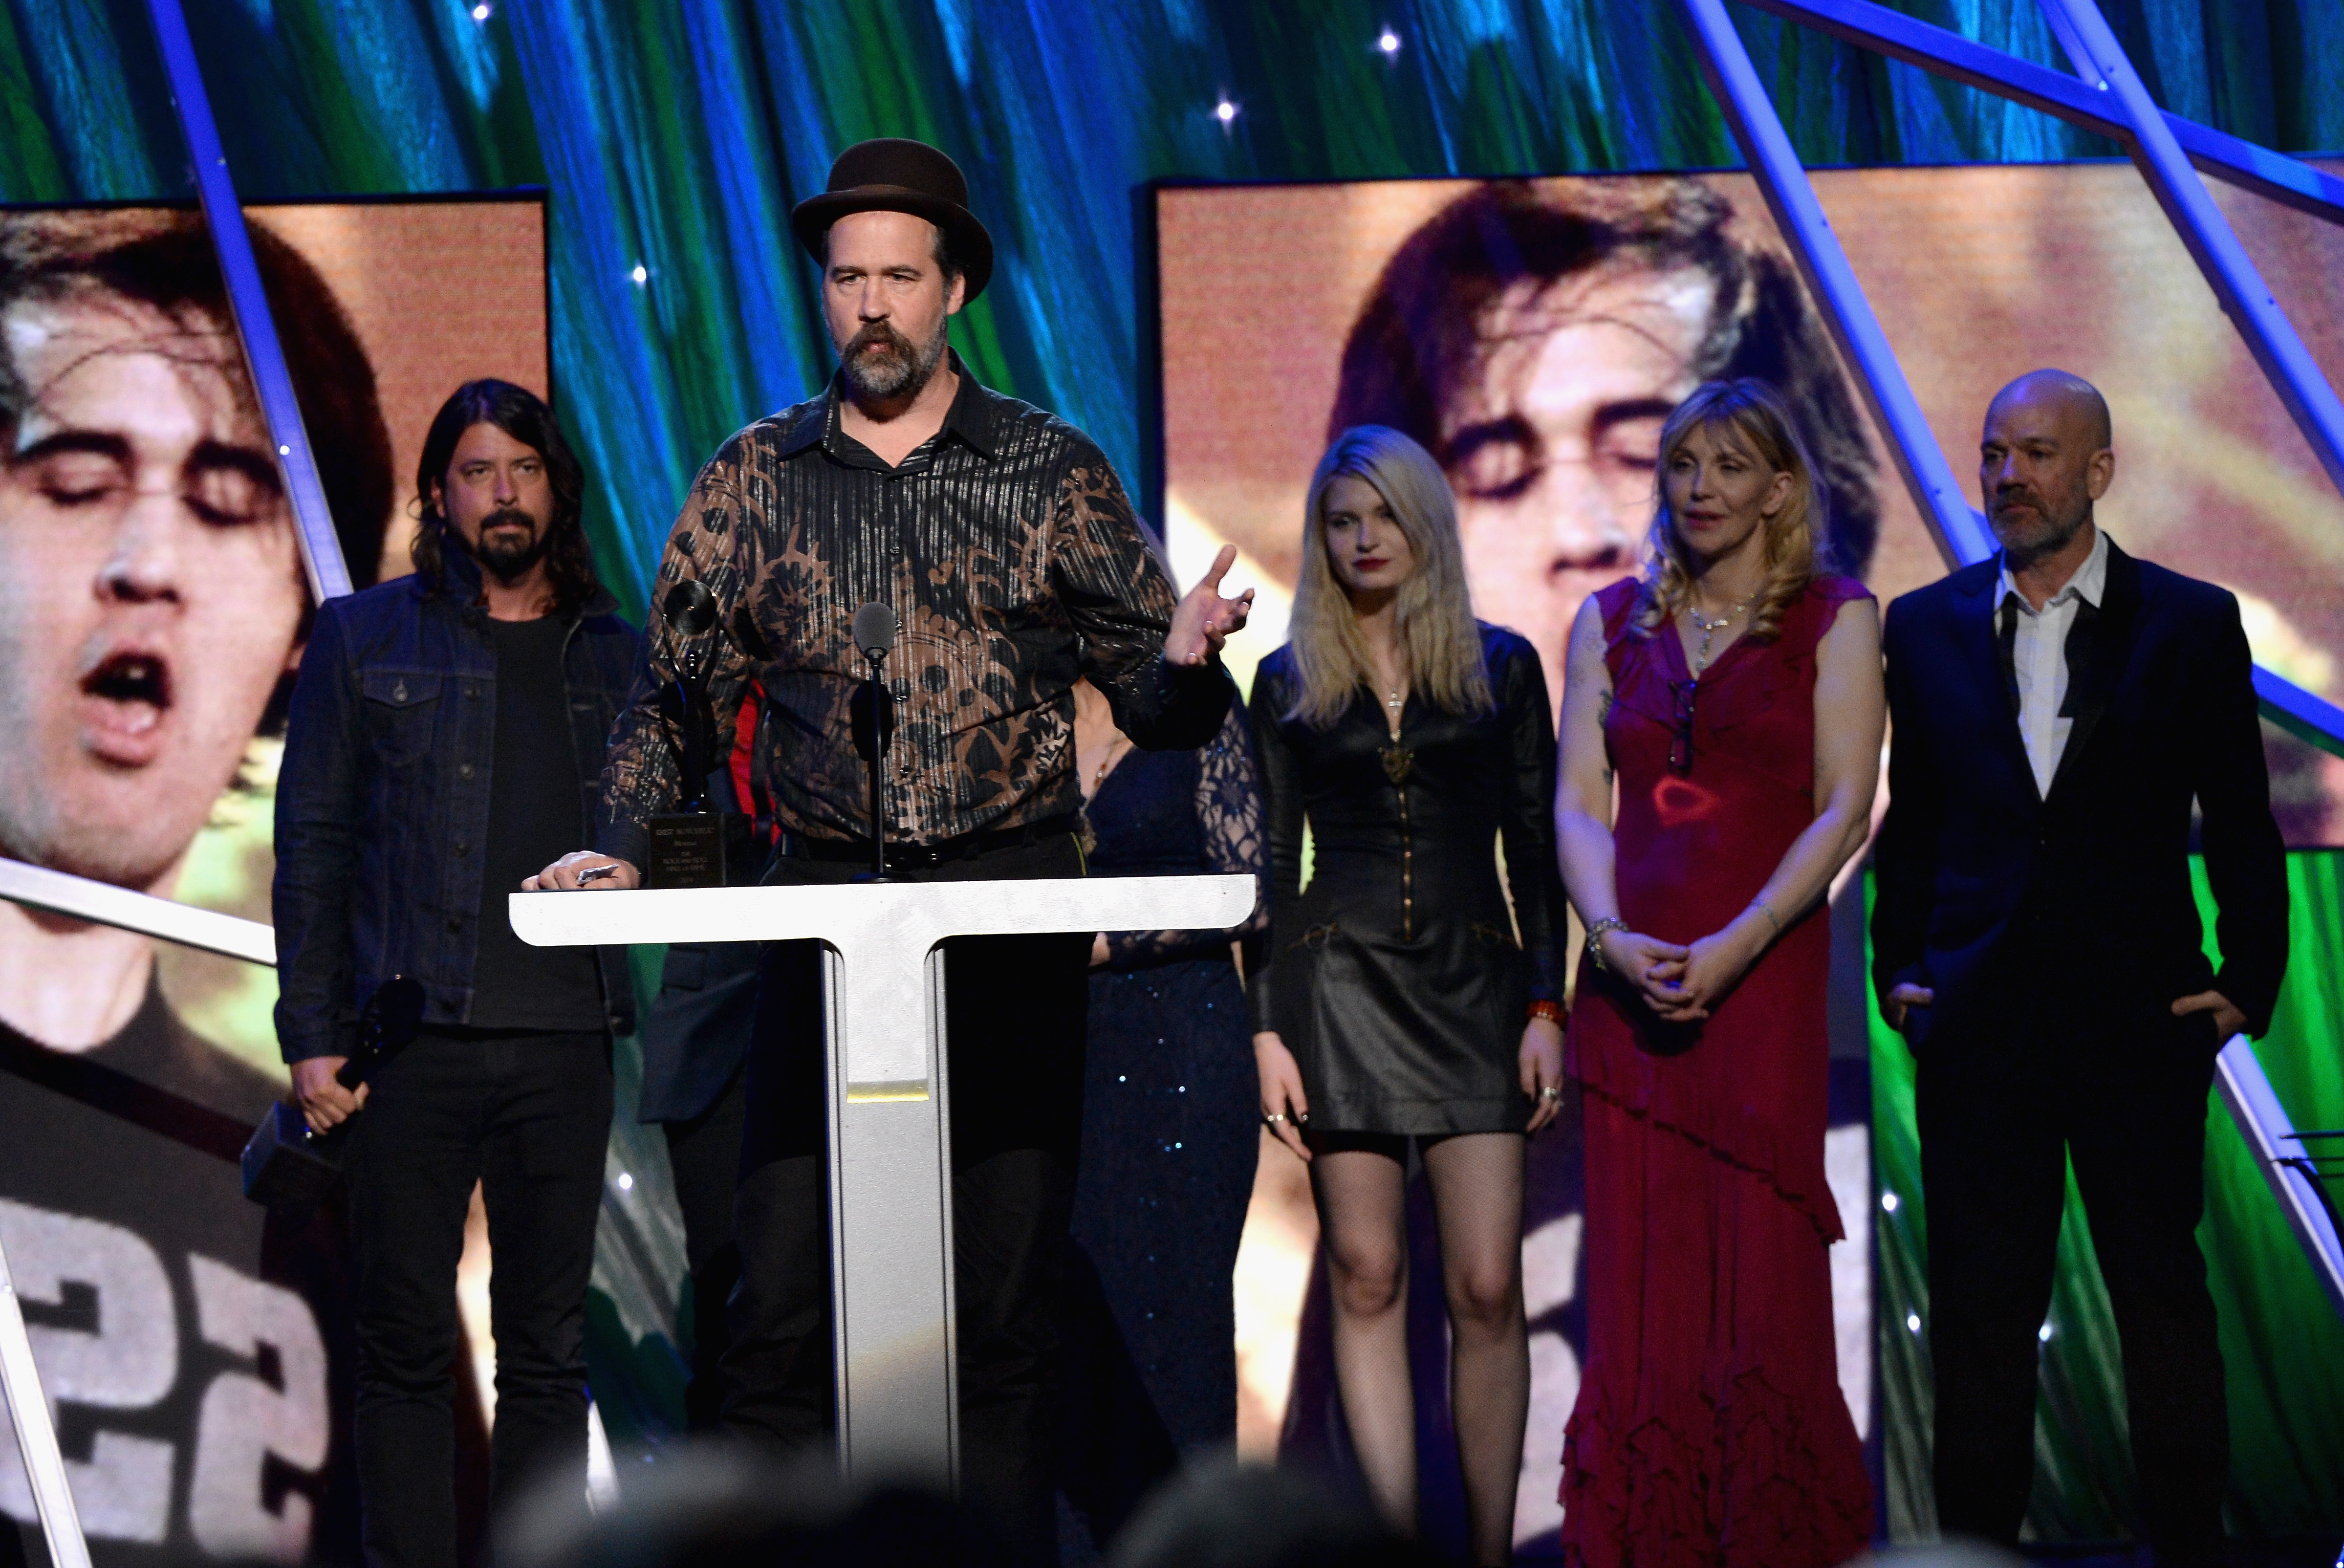 Krist Novoselic of Nirvana speaks onstage at the 29th Annual Rock And Roll Hall Of Fame Induction Ceremony at Barclays Center of Brooklyn on April 10, 2014 in New York City.